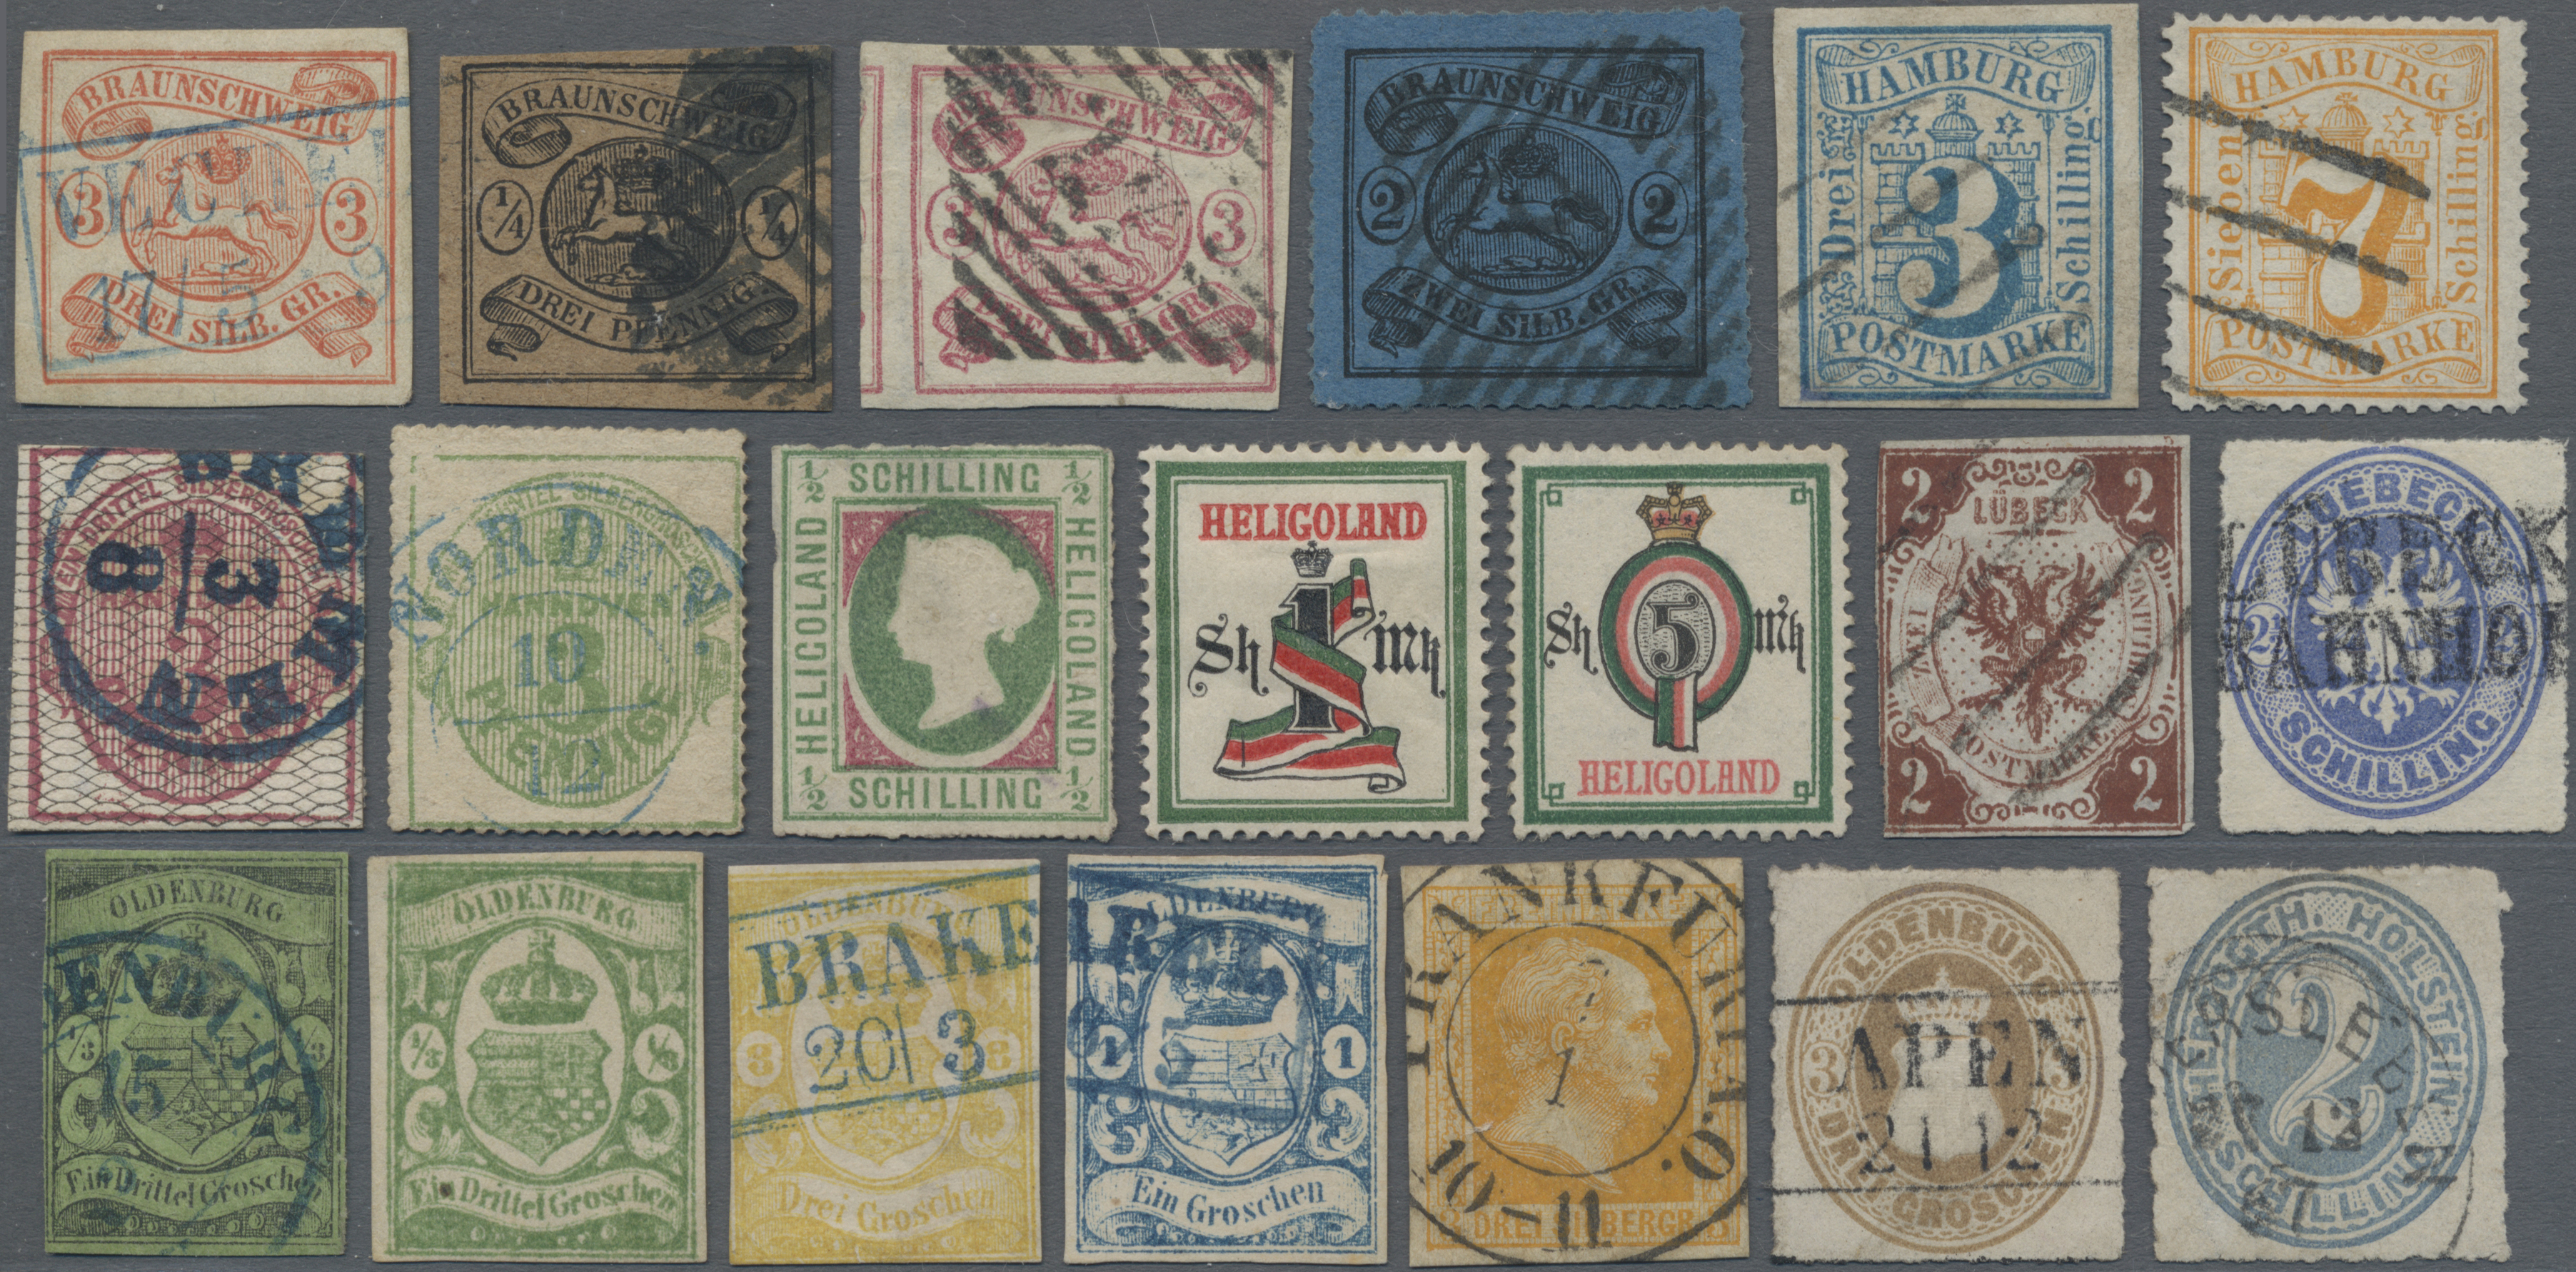 Lot 28107 - altdeutschland  -  Auktionshaus Christoph Gärtner GmbH & Co. KG Sale #46 Gollcetions Germany - including the suplement